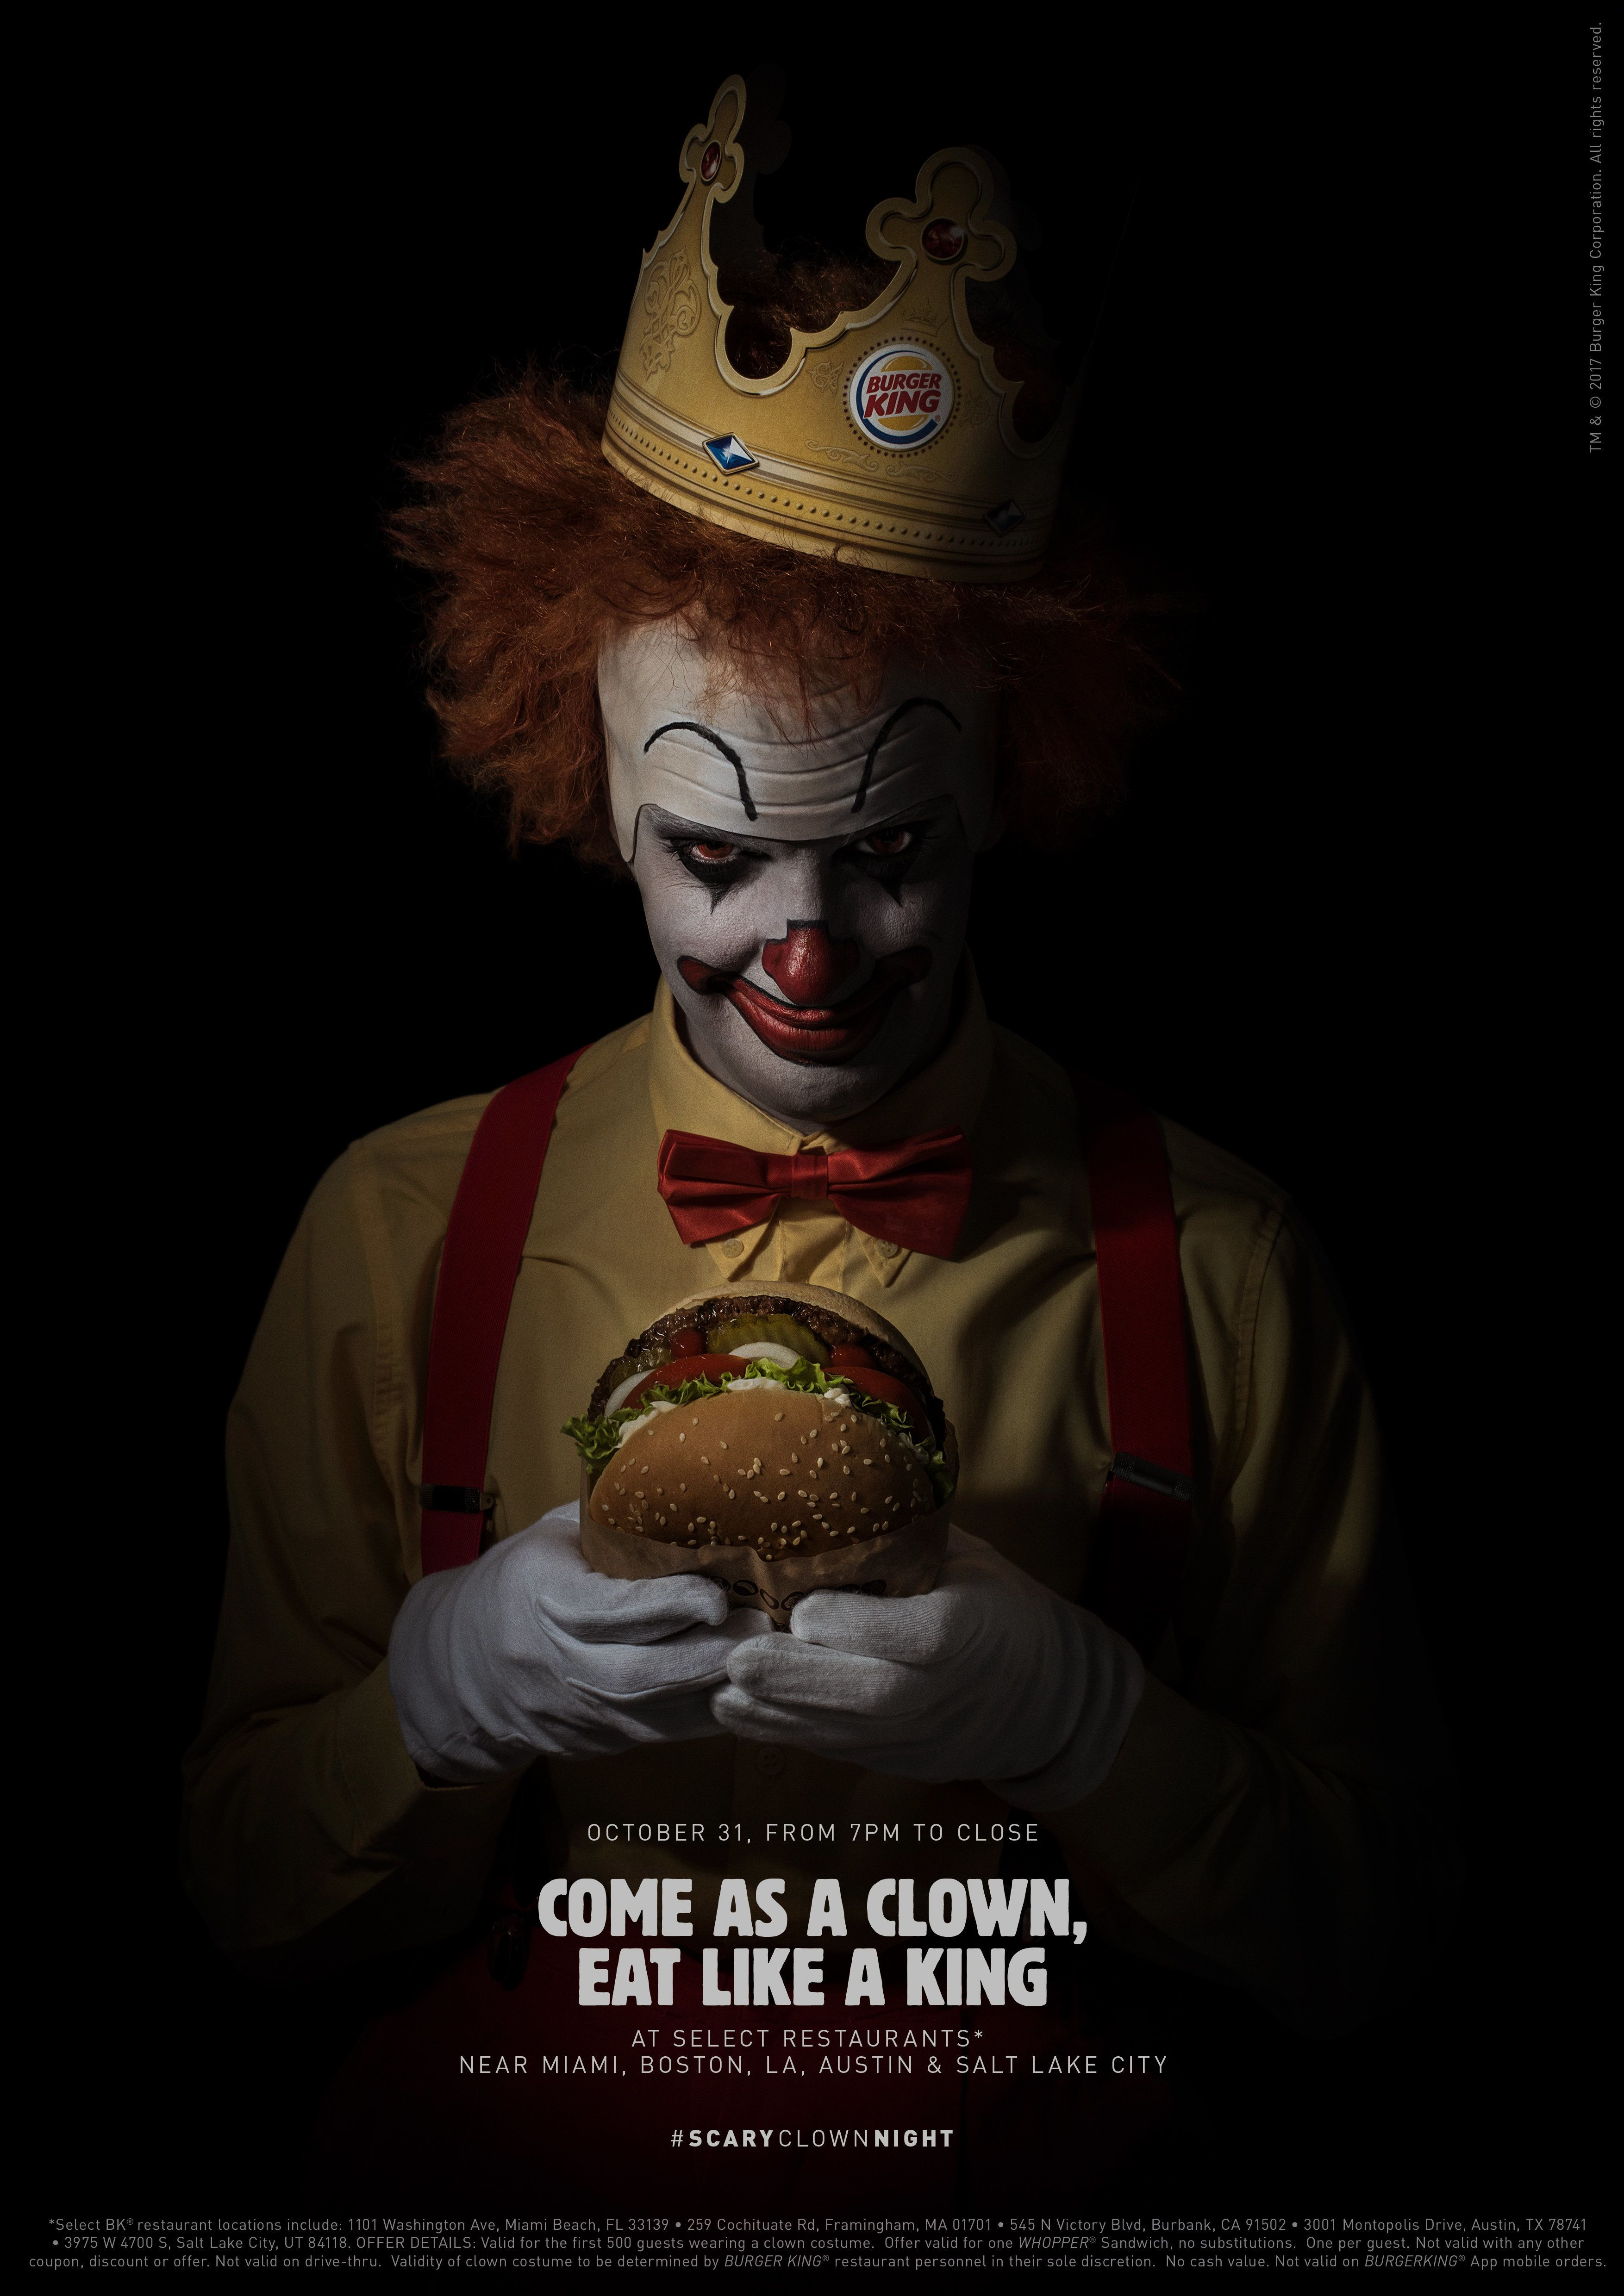 Select Burger King restaurants will hand out free Whopper sandwiches to people dressed like clowns this Halloween